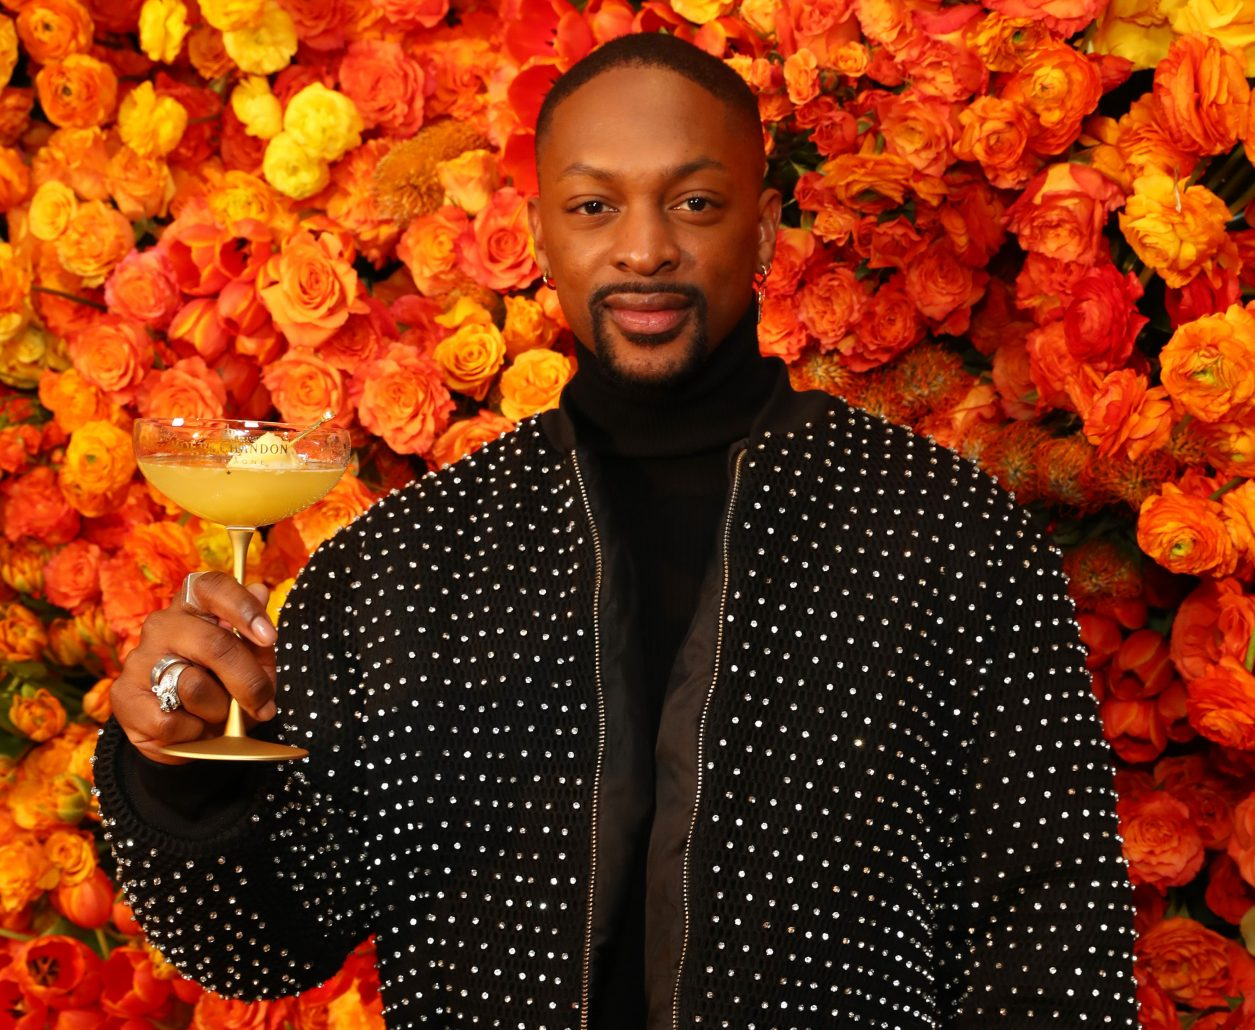 """BEVERLY HILLS, CALIFORNIA - DECEMBER 16: Laquan Smith poses with the signature cocktail """"The Moet Golden Hour"""" at the 77th Annual Golden Globe Awards Show Menu Unveiling at The Beverly Hilton Hotel on December 16, 2019 in Beverly Hills, California. (Photo by Joe Scarnici/Getty Images for Moët & Chandon)"""